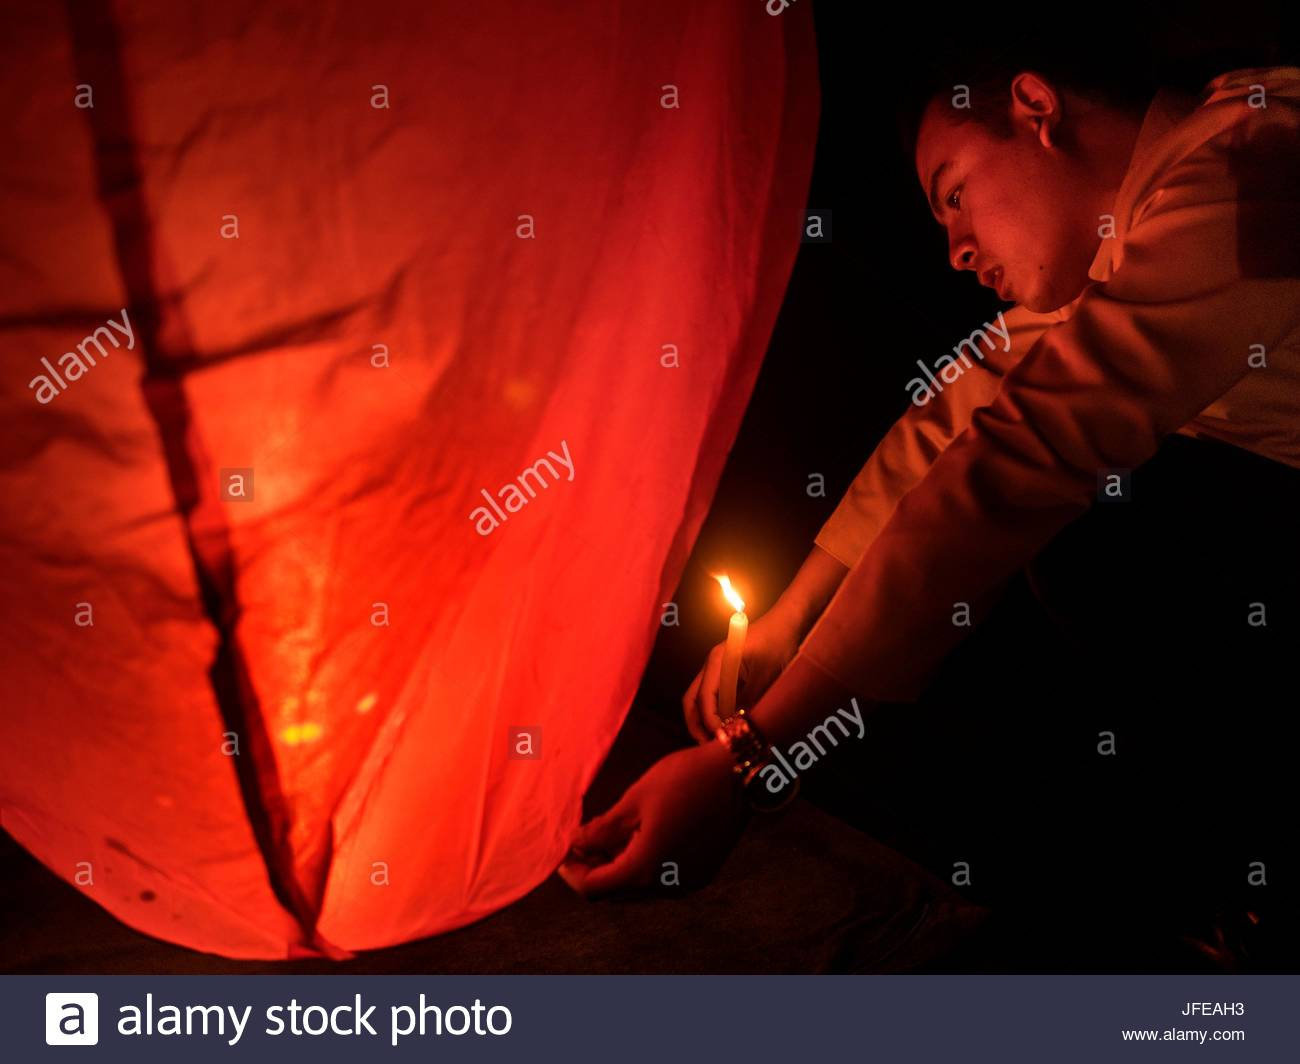 A man lights a candle for a balloon ceremony. - Stock Image